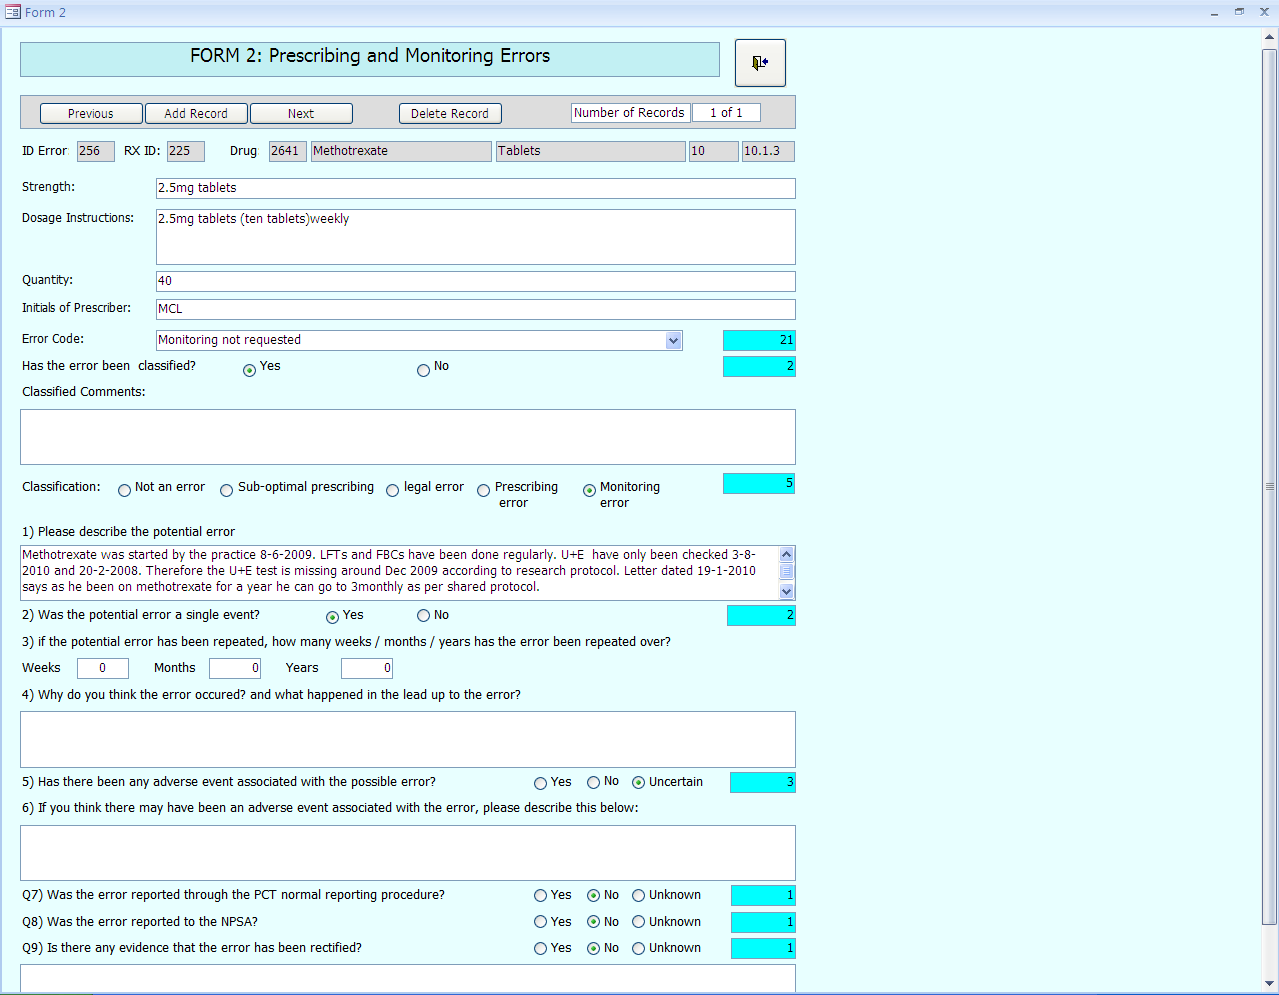 Figure 3: Example of a Microsoft Access data entry screen for recording detailed information on possible prescribing errors. 4.